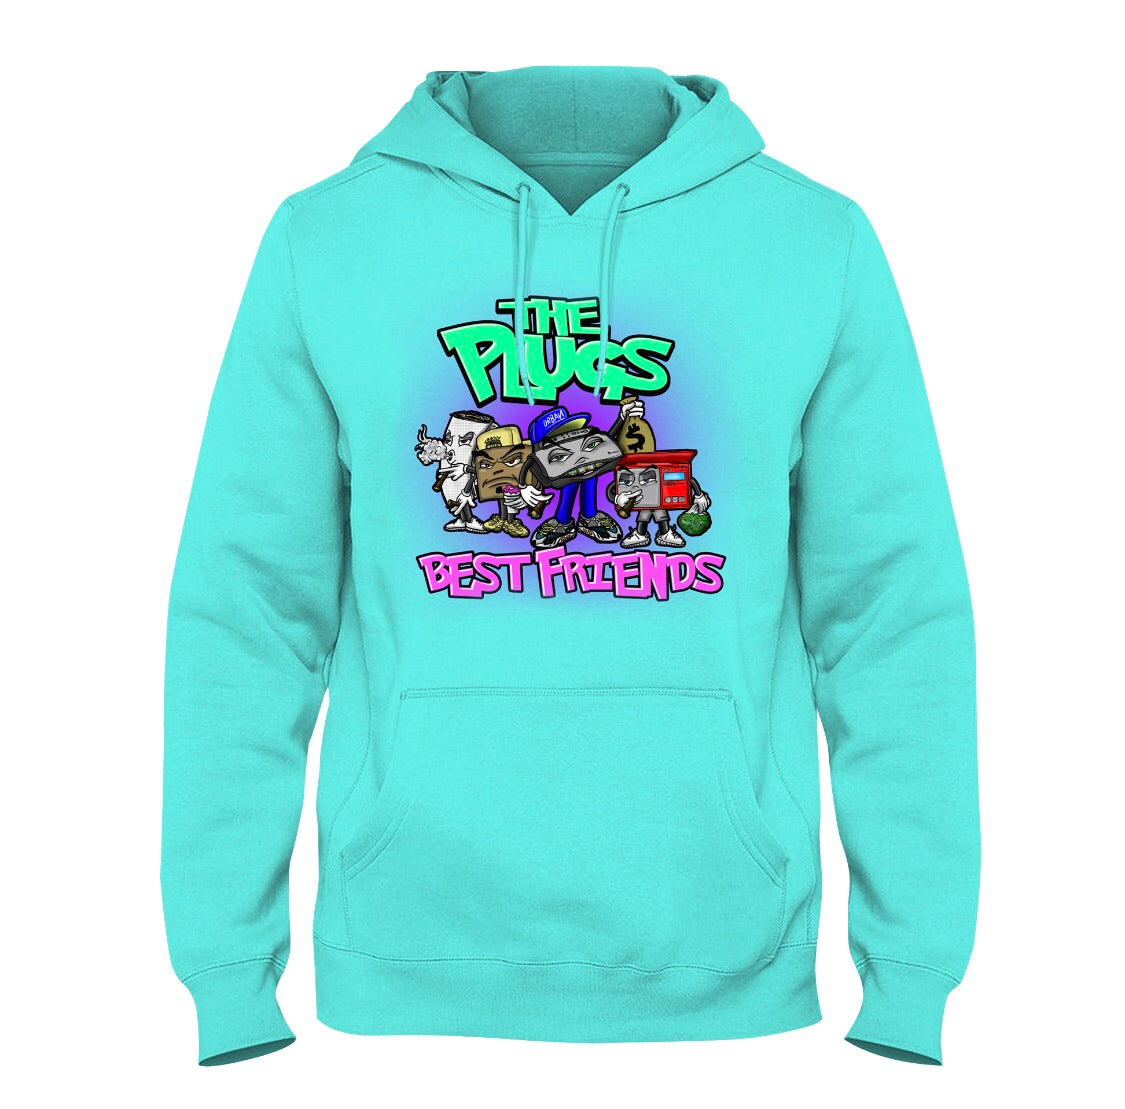 The plugs best friends hoodie